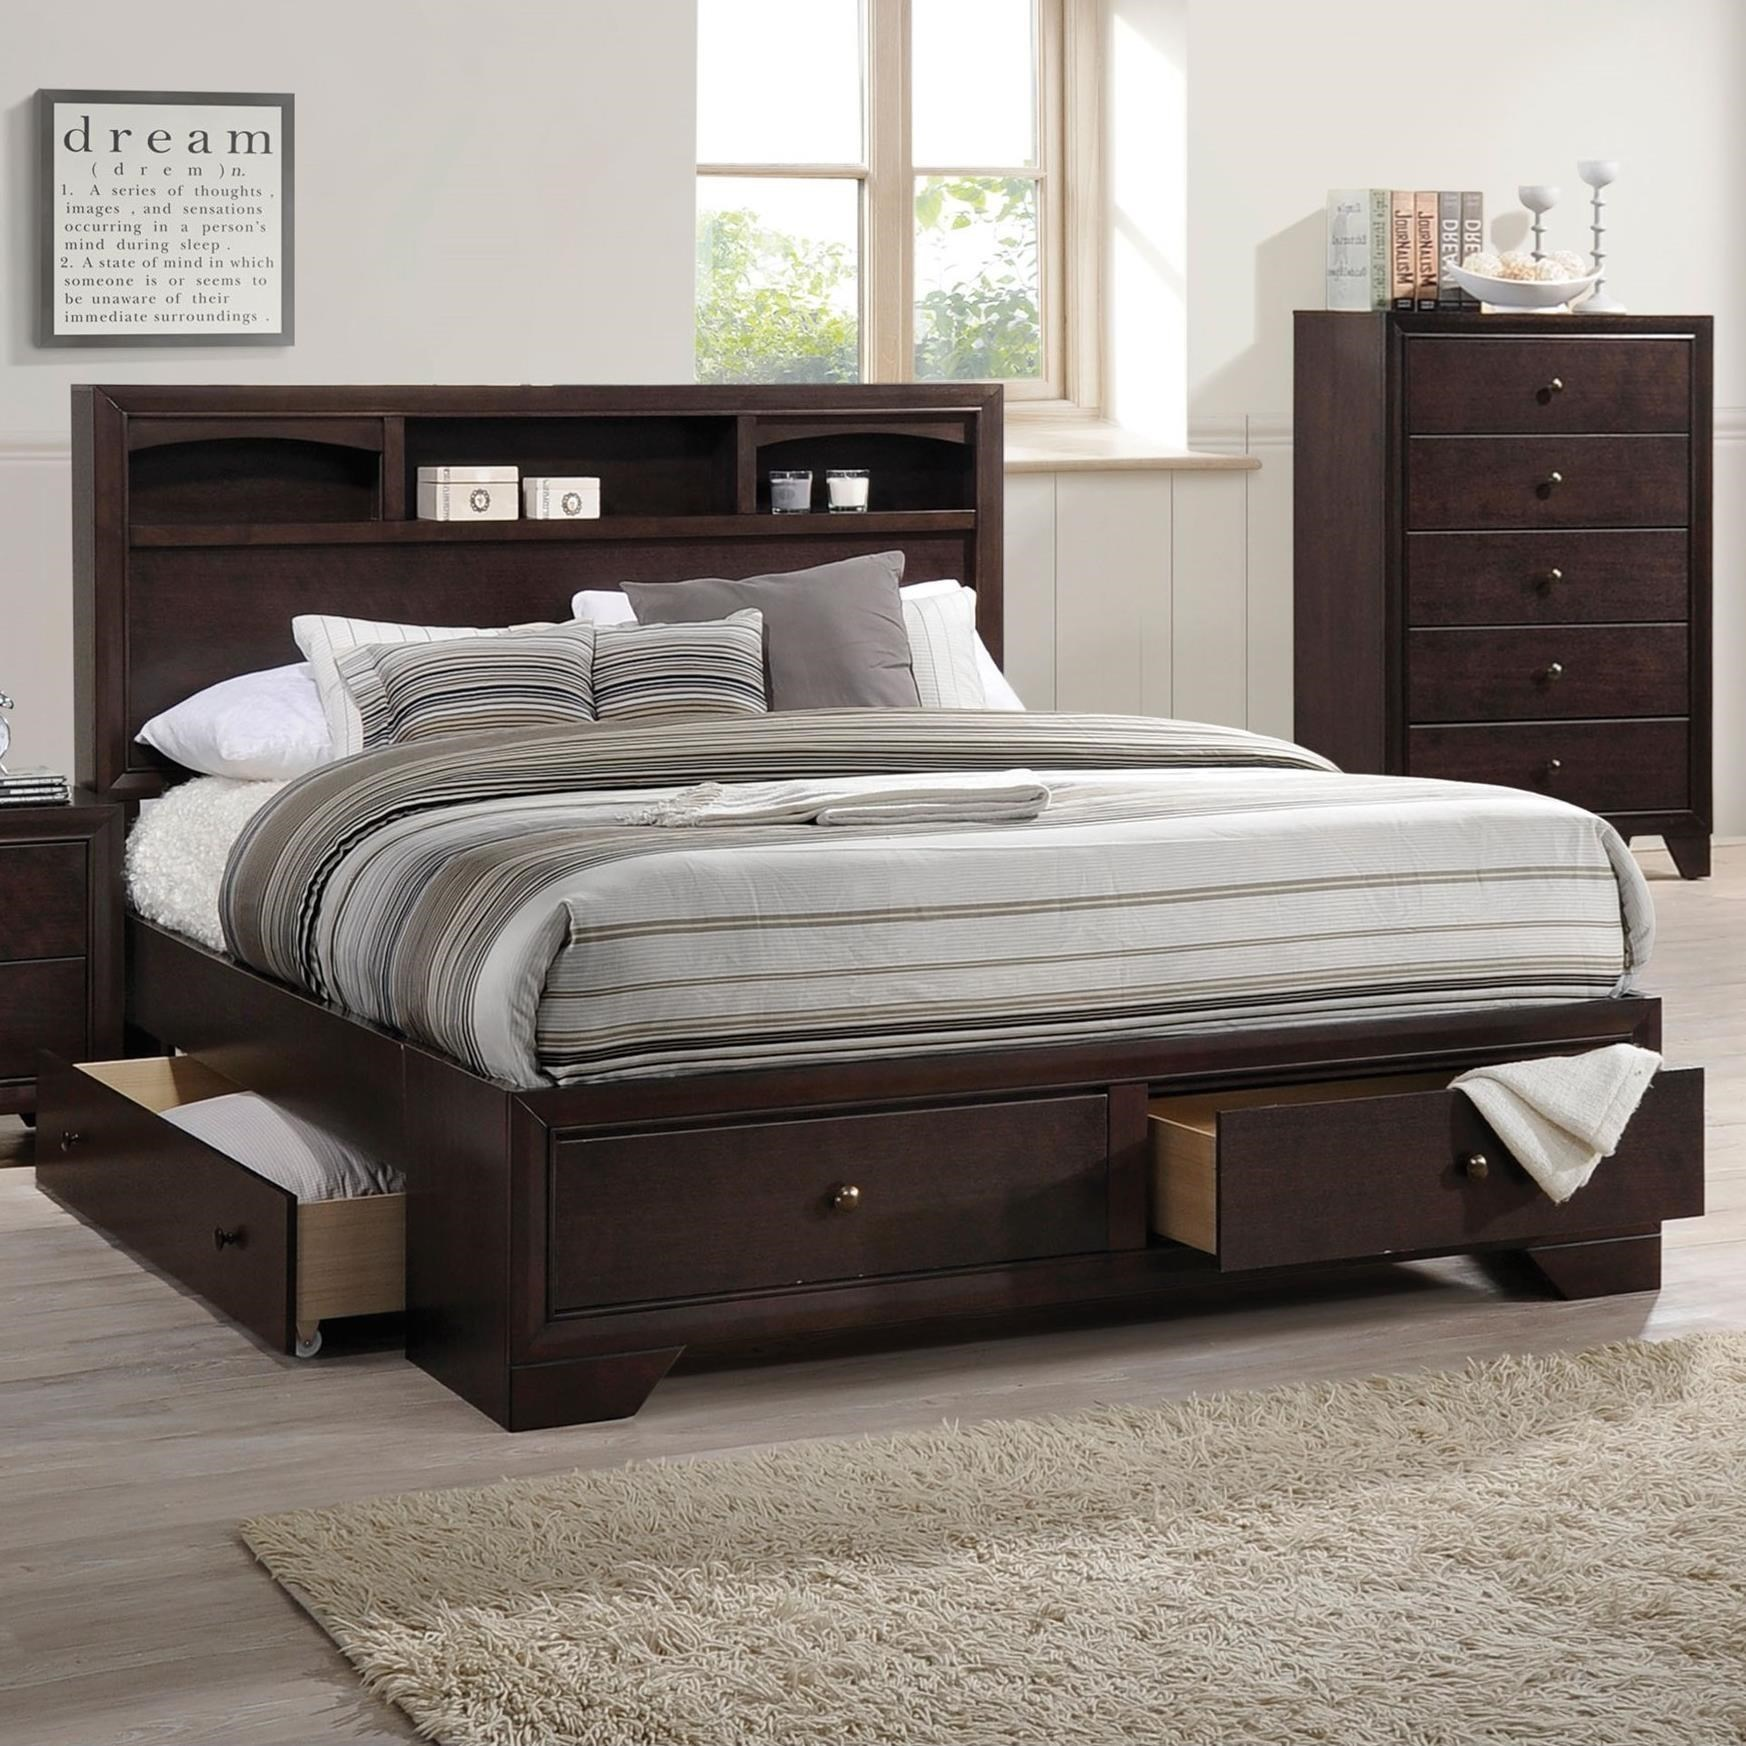 Madison II Queen Bed w/Storage by Acme Furniture at Del Sol Furniture